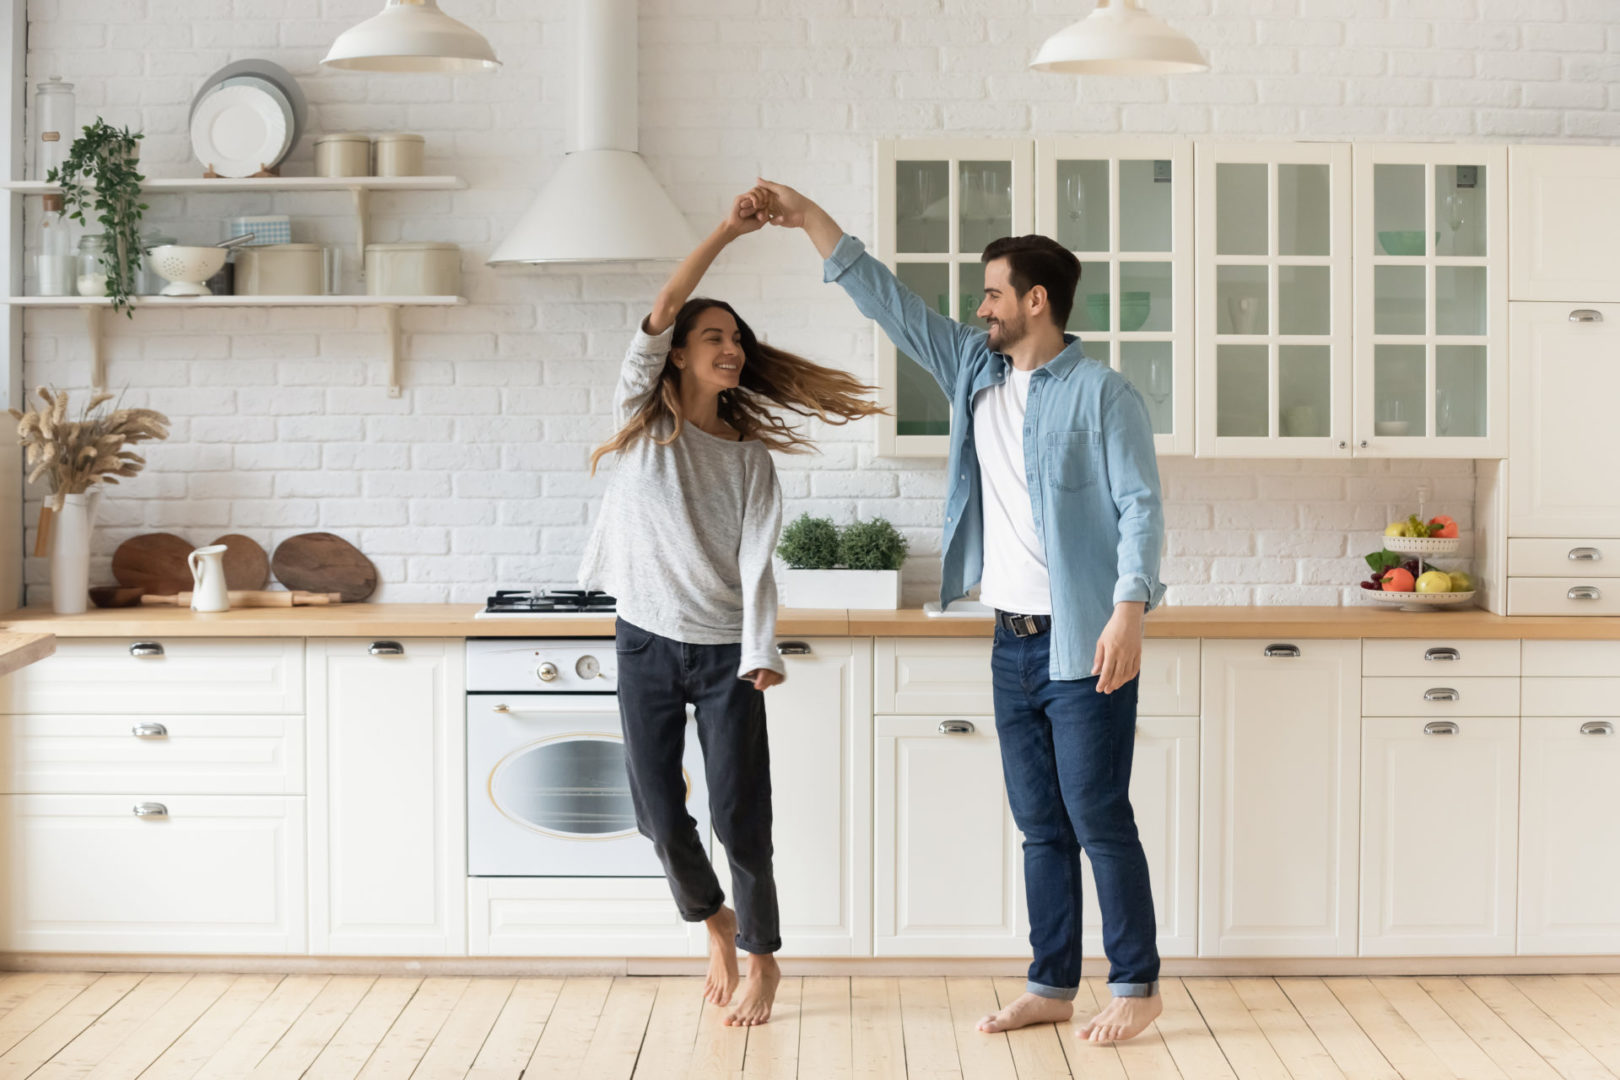 Happy loving couple having fun in kitchen, dancing together, celebrating relocation or anniversary, handsome young husband holding beautiful wife hand, moving to favorite music, enjoying date